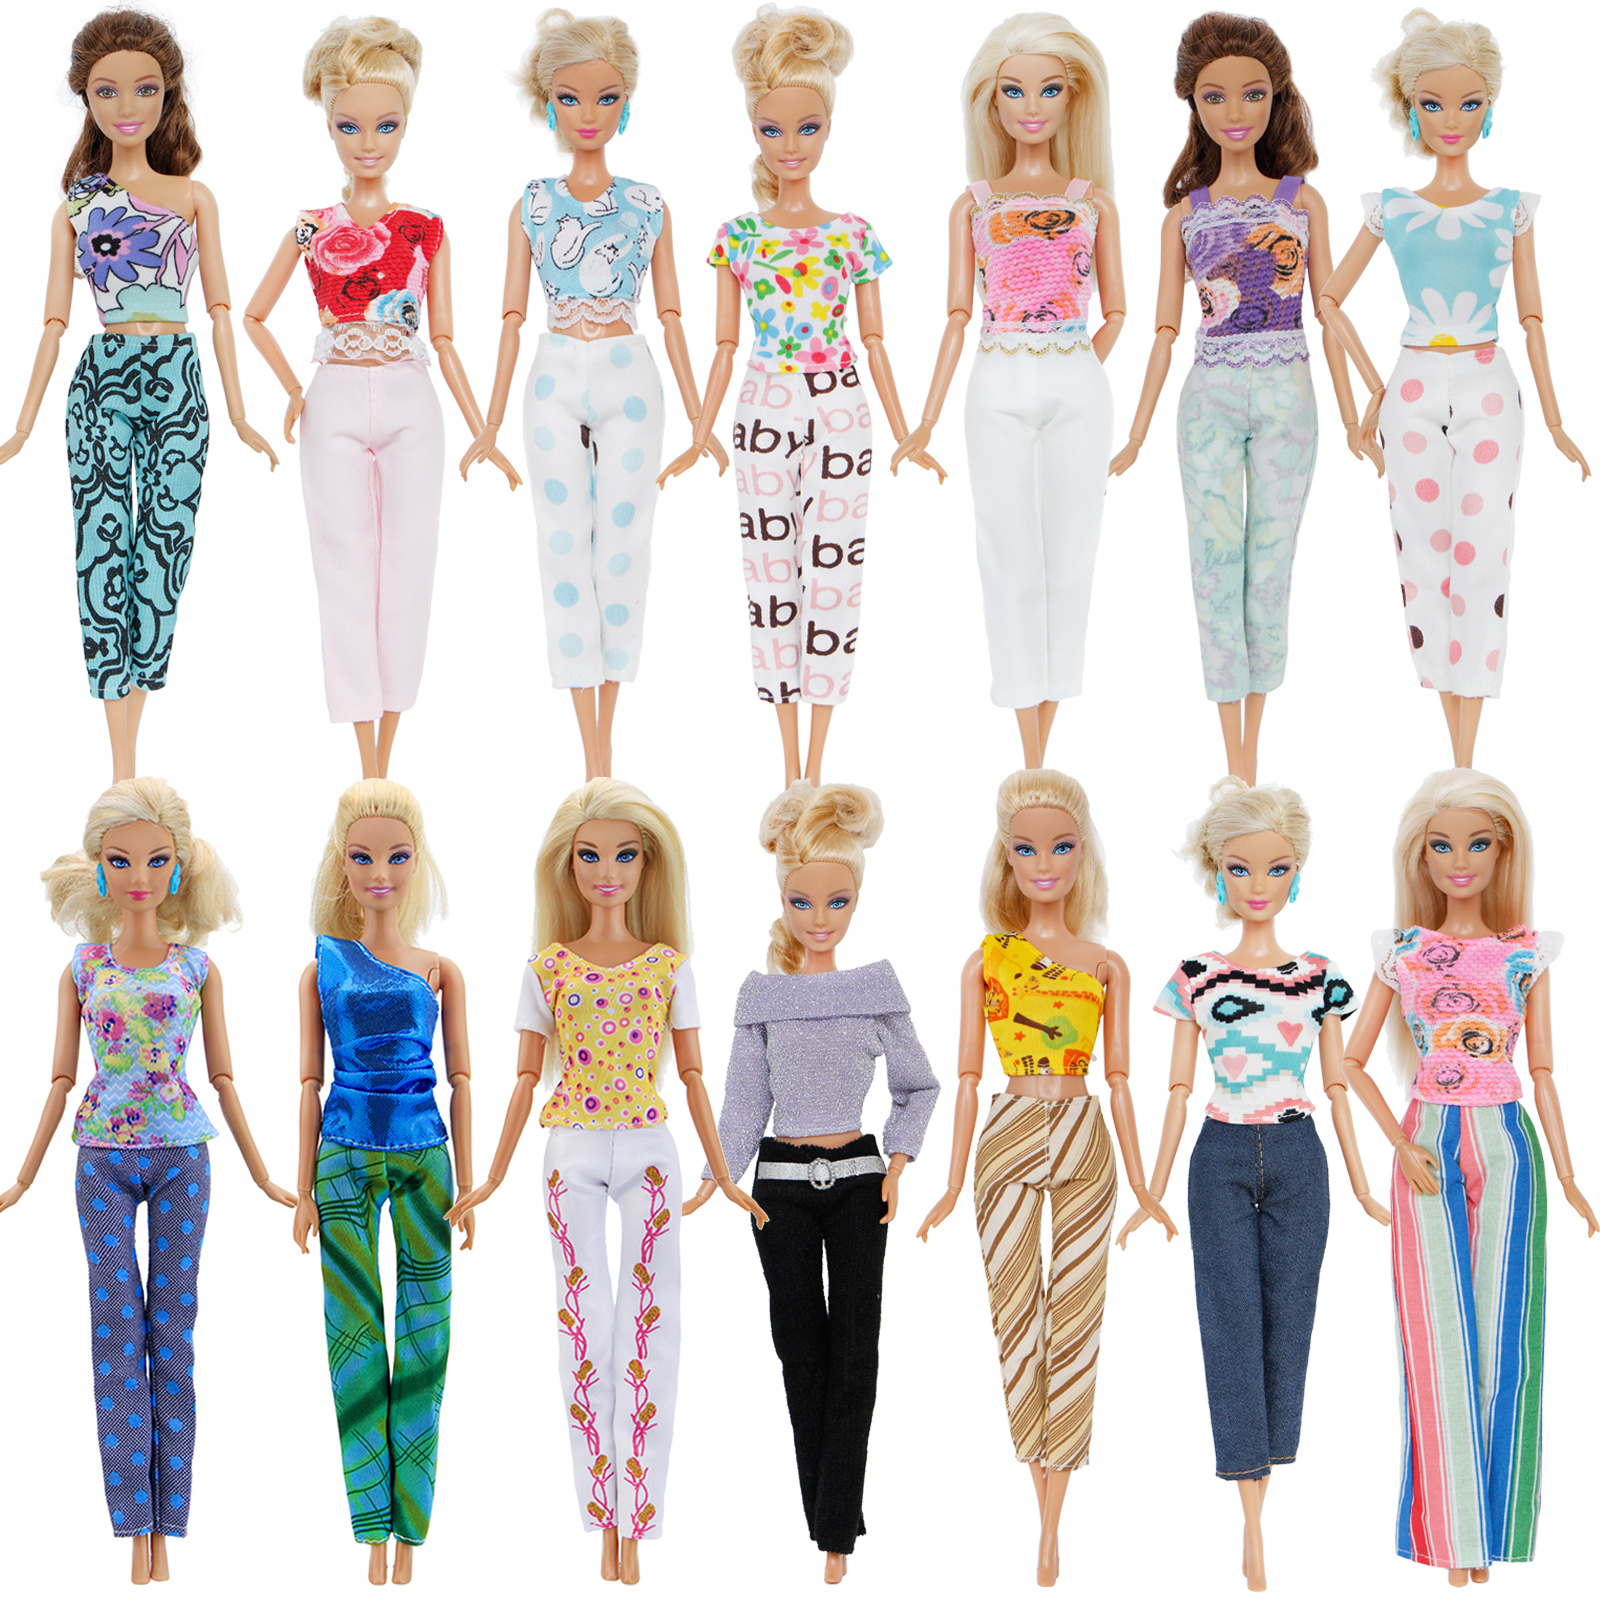 Random 10 Pcs = 5x Blouse + 5x Bottoms Trousers Pants Lady Outfits Girl Daily Wear Dollhouse Accessories Clothes For Barbie Doll(China)